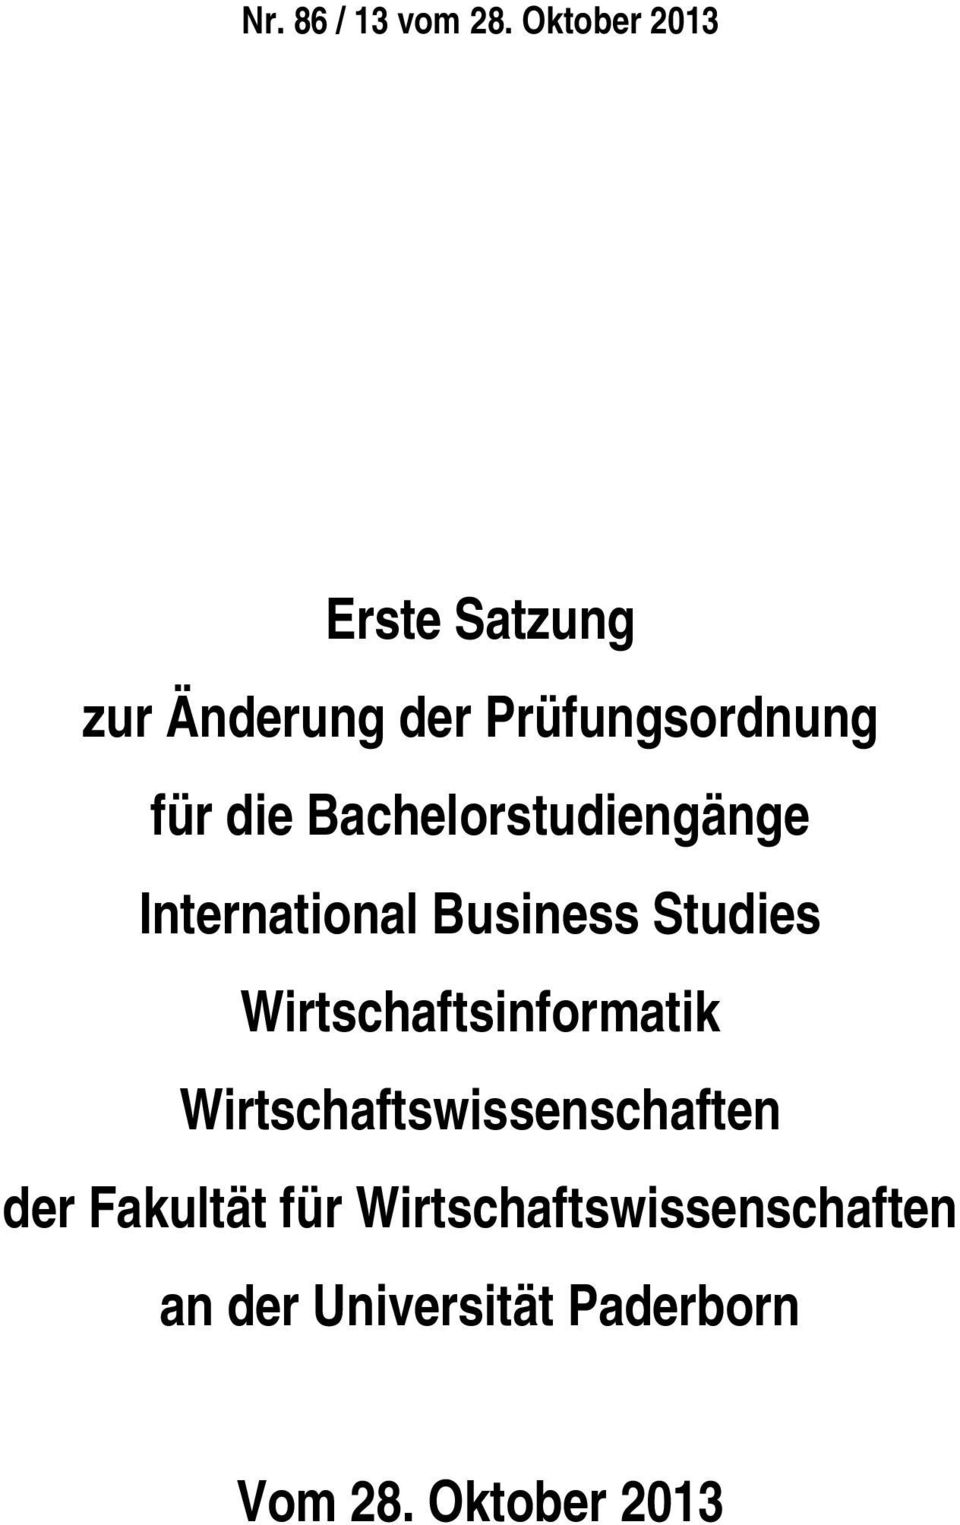 Bachelorstudiengänge International Business Studies